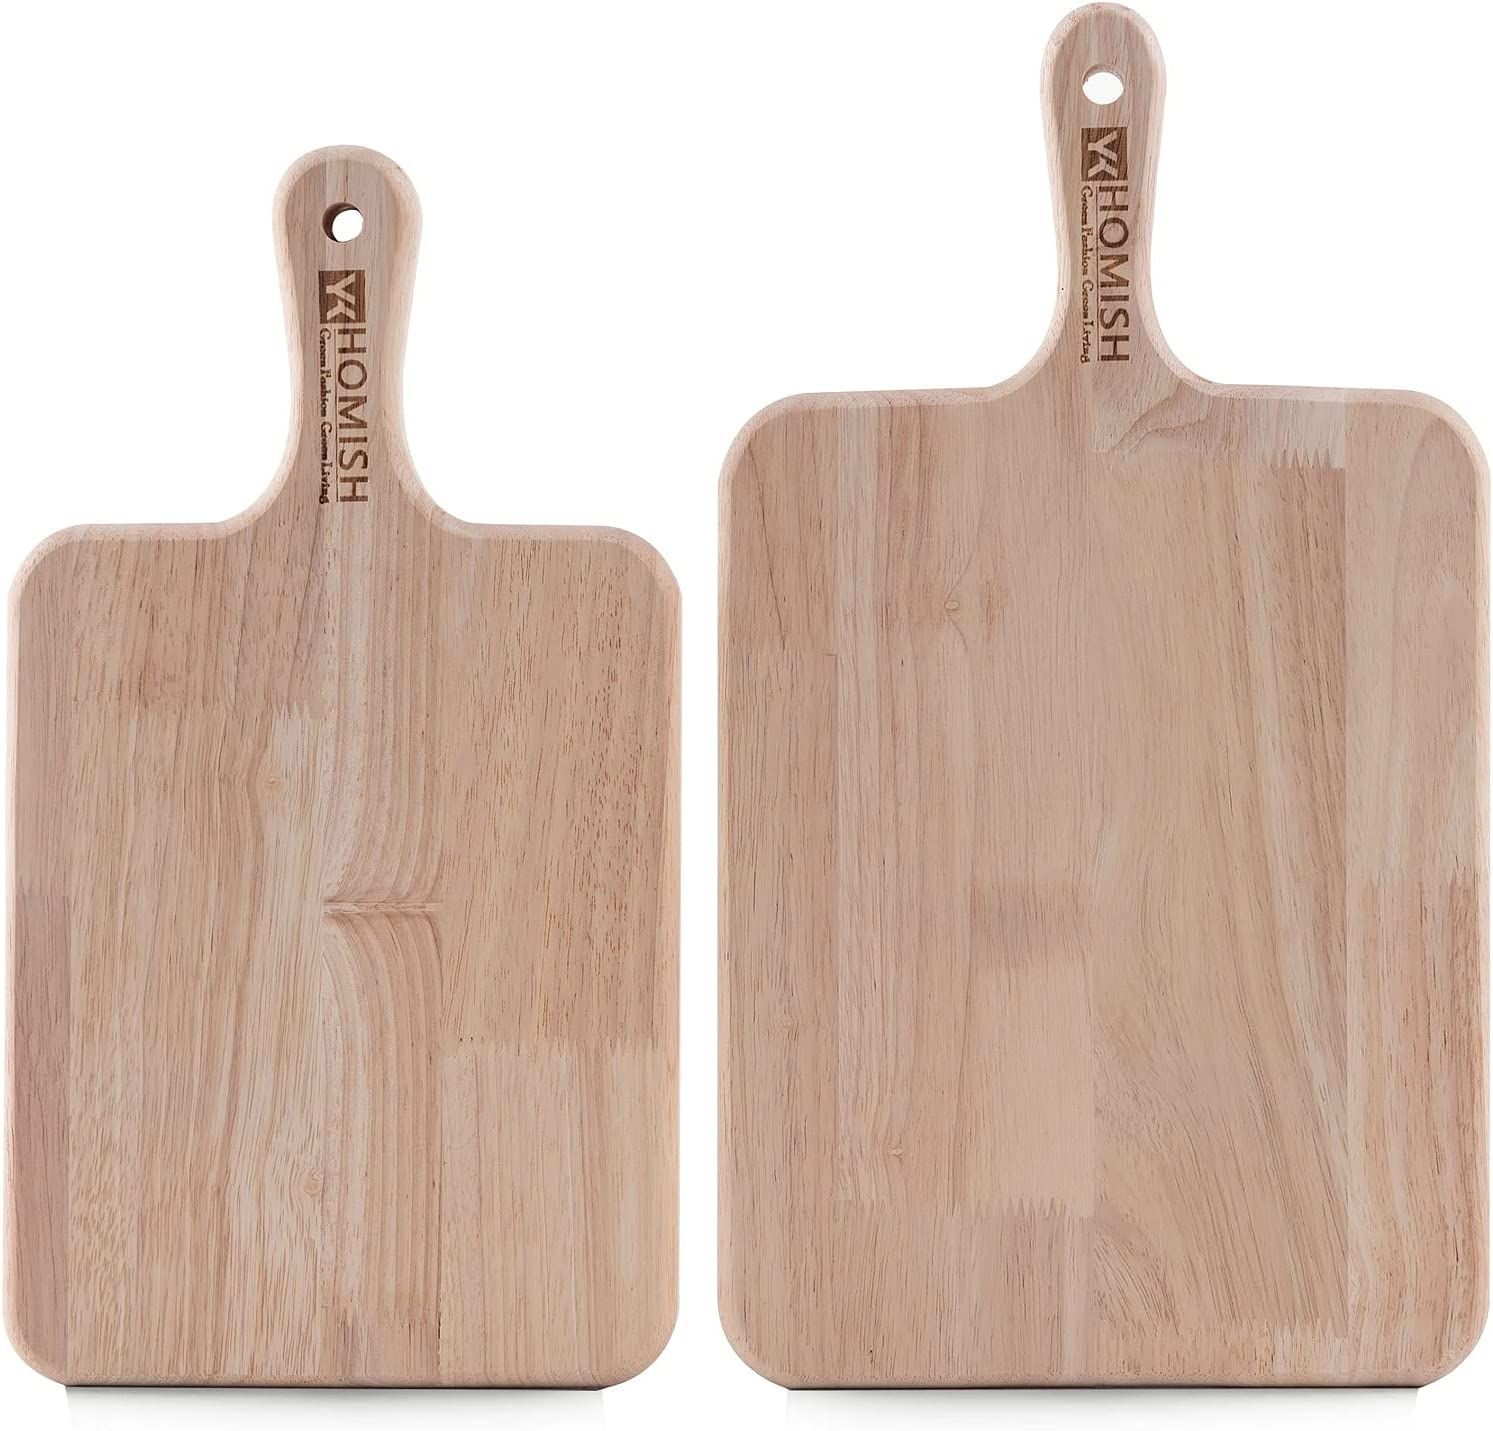 Wood Cutting Board for Kitchen Thick Chopping Board with Handles (Brown Rectangle, 16x9 & 14.5X8